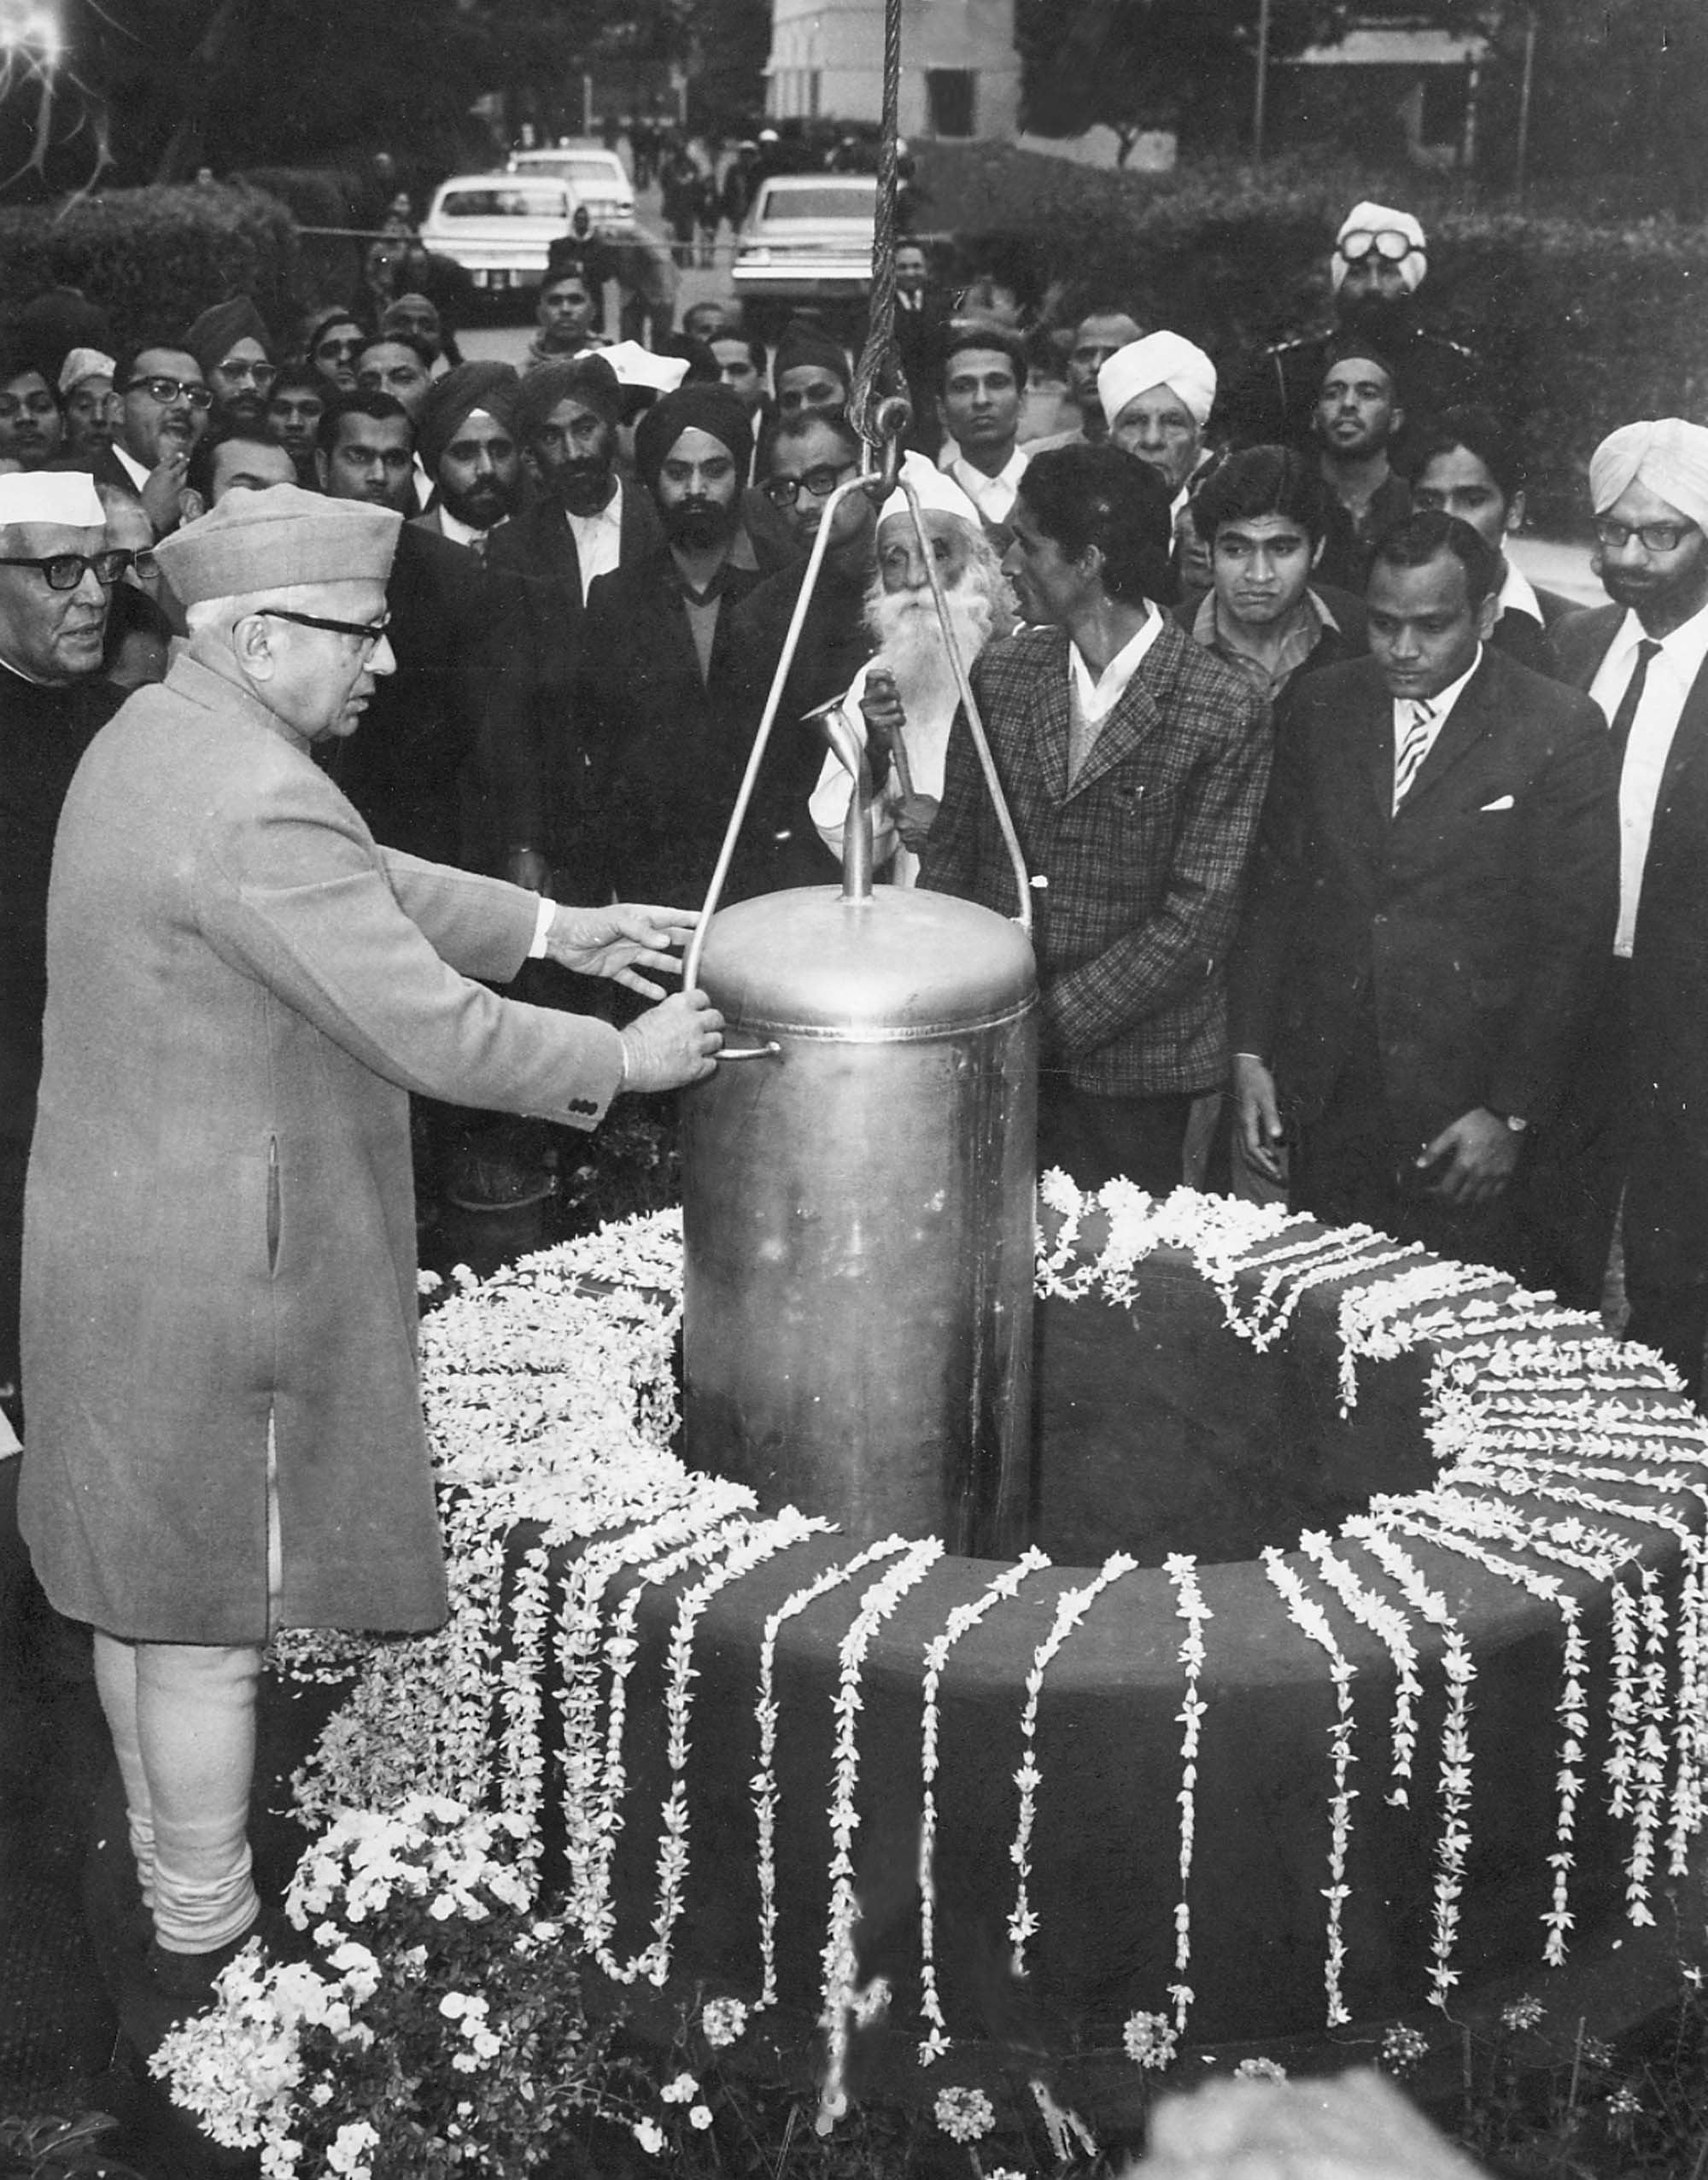 A time capsule devoted to the life and works of Mahatma Gandhi being embedded by Vice President G. S. Pathak in New Delhi.